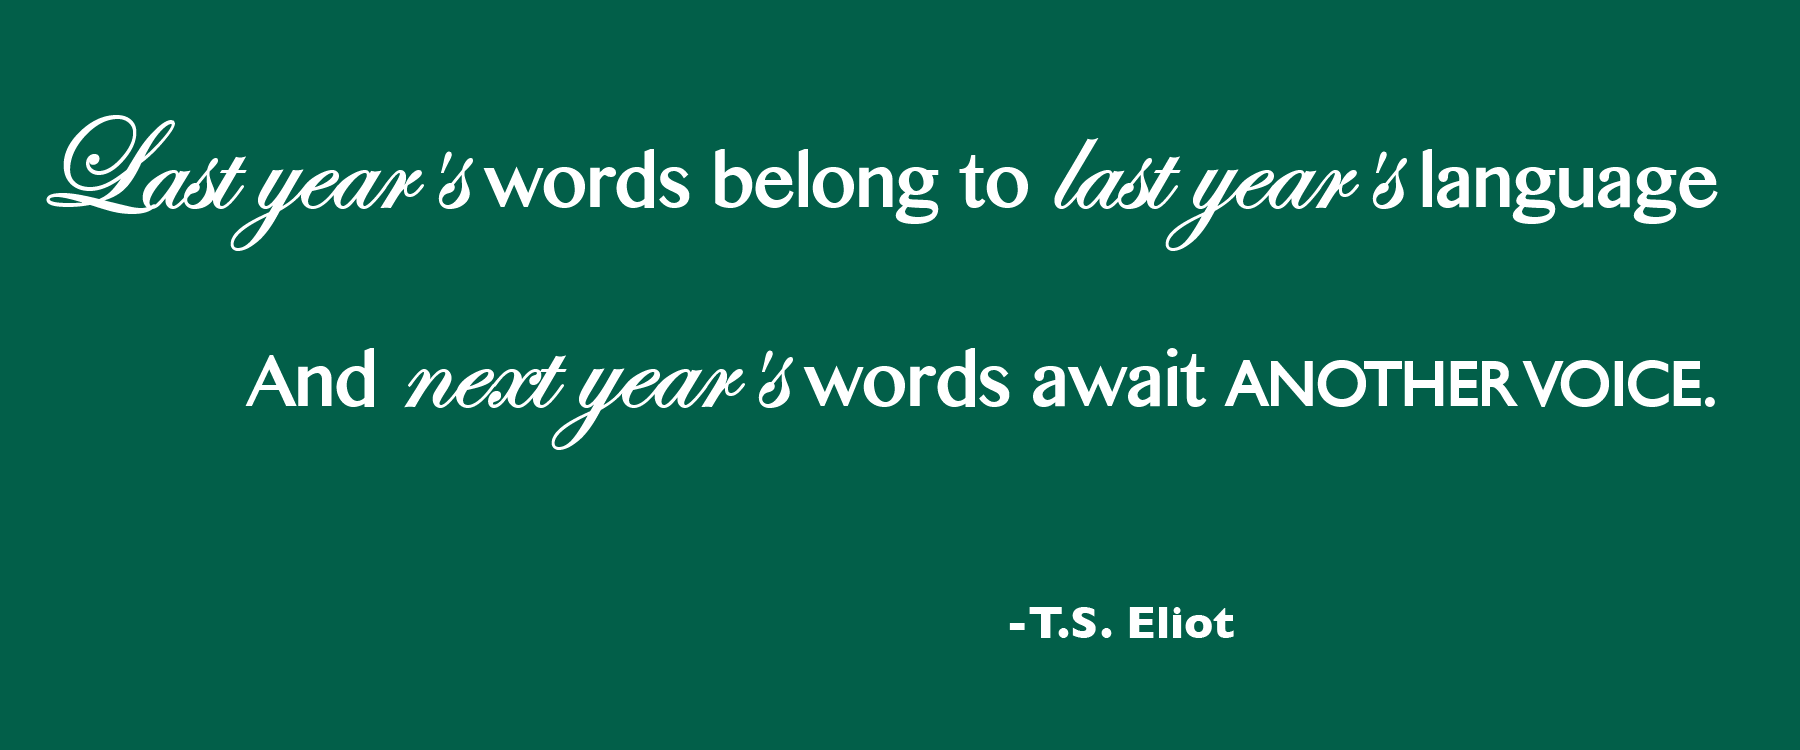 T.S. Eliot on transition/New Year's